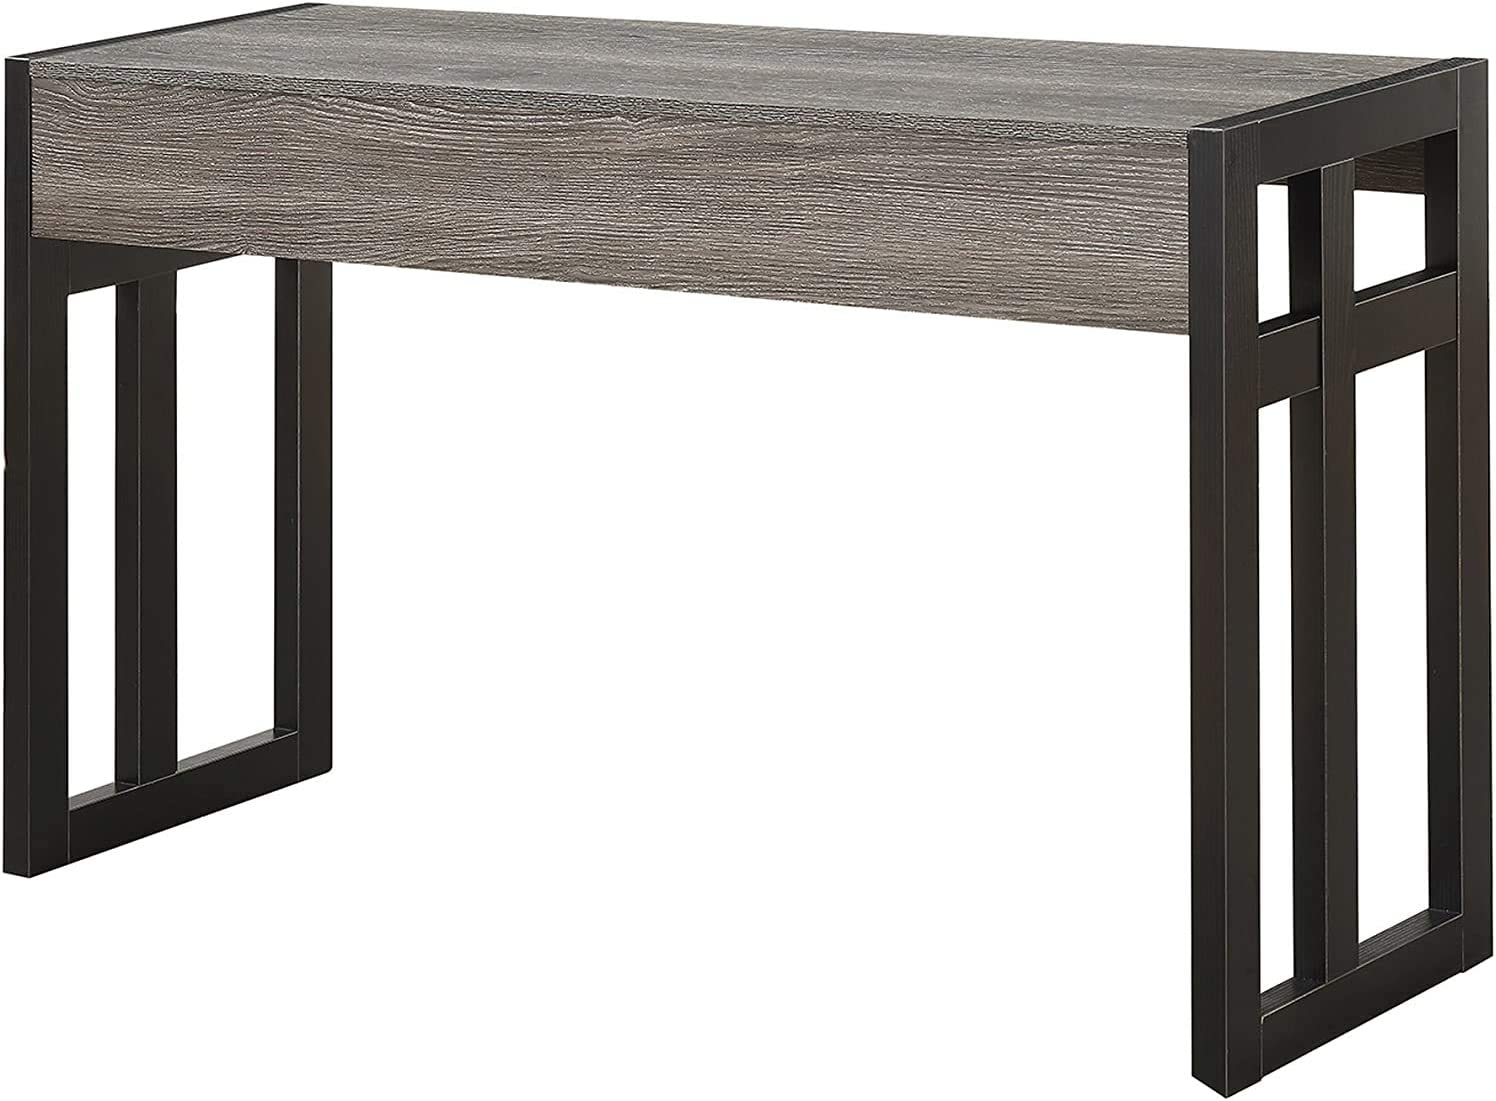 Convenience Columbus Mall Concepts Monterey Year-end annual account Console Weathered Gray Bl Table